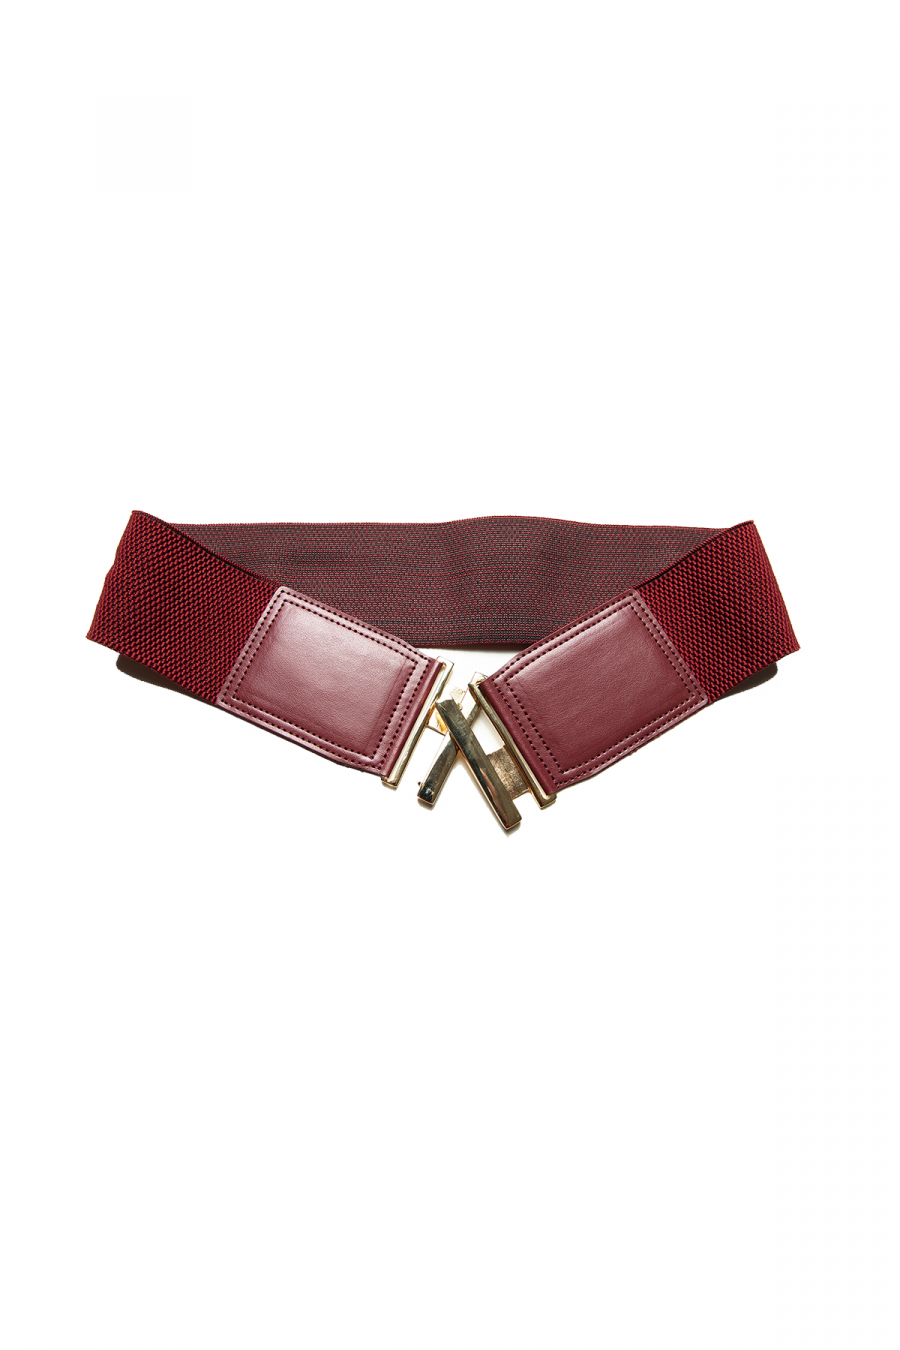 STICK BELT BURGUNDY